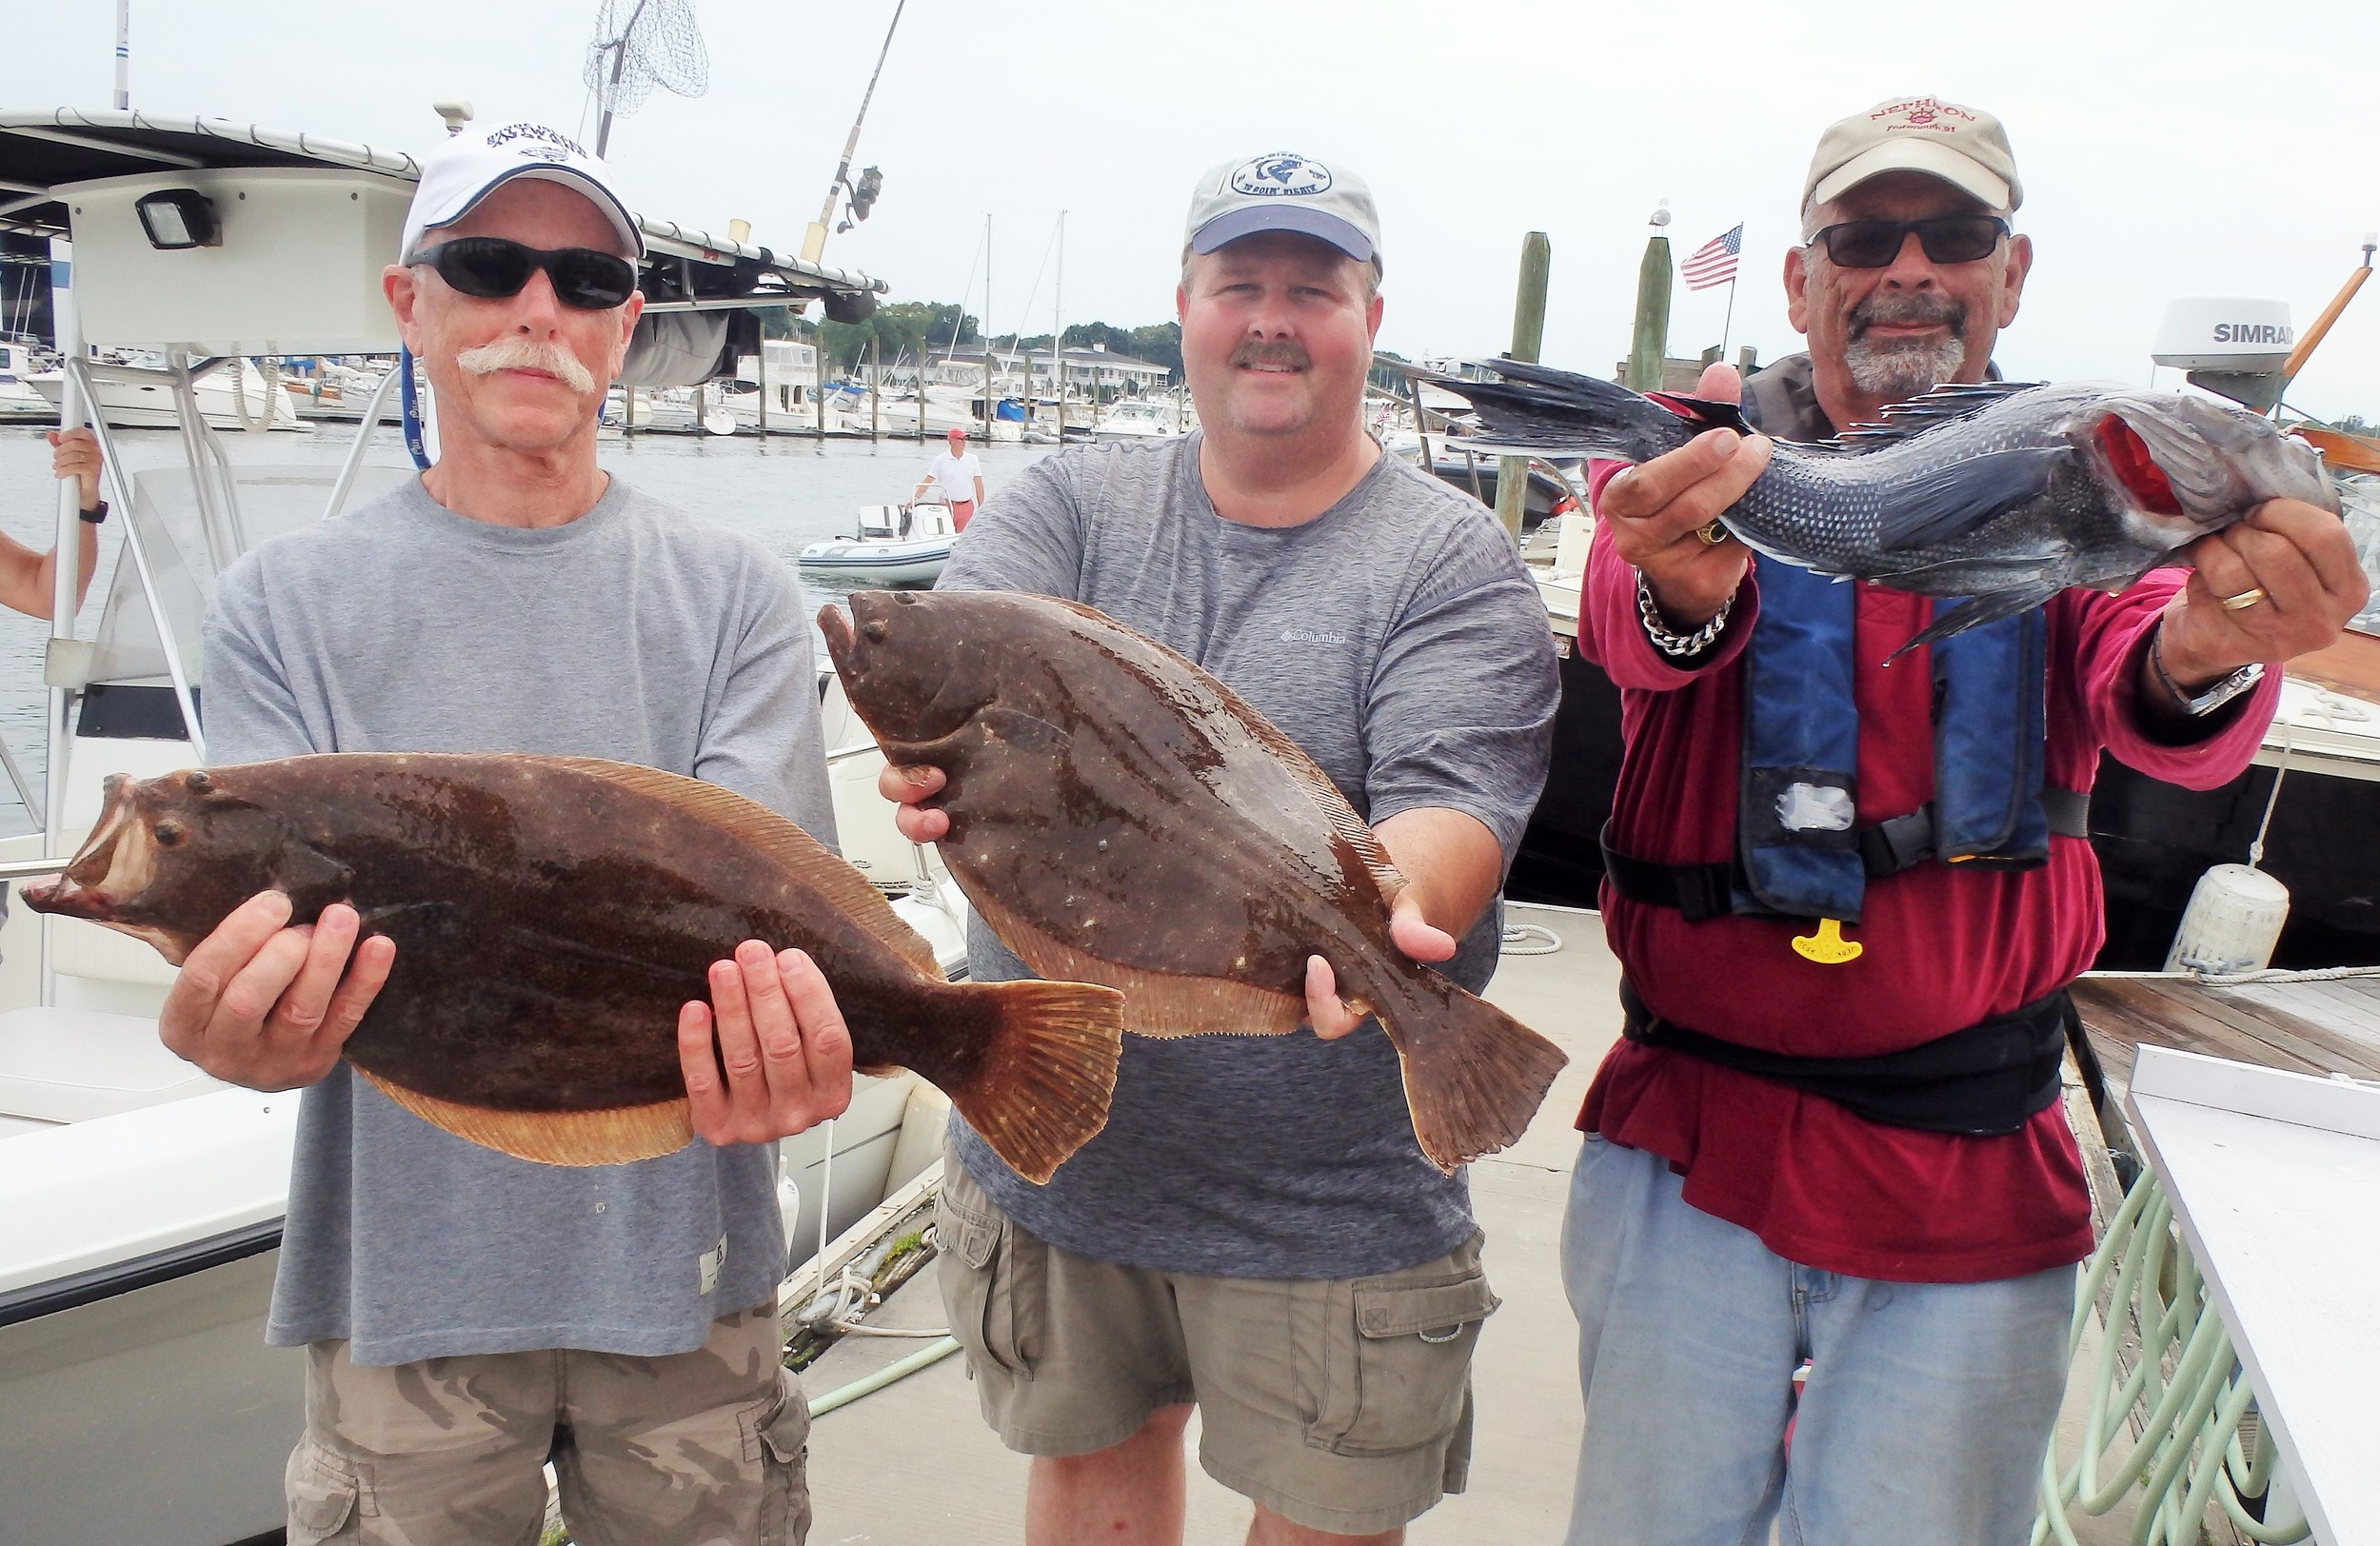 Rich Heffernan, Tom Wood and Larry Audino fished the East Grounds off Block Island for summer flounder and black sea bass Saturday.